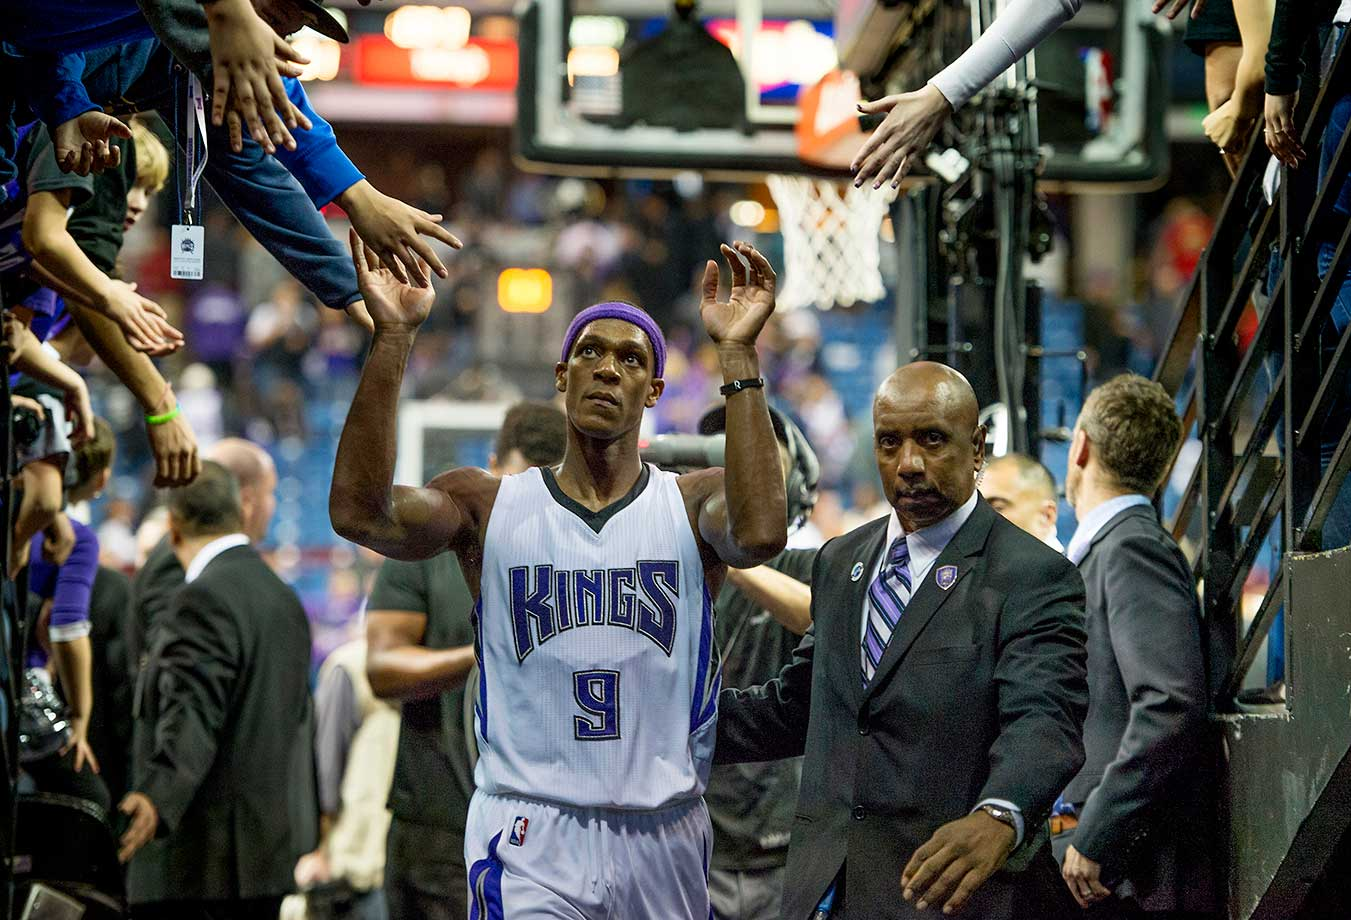 The Sacramento Kings' Rajon Rondo leaves the floor after the Kings' 91-88 victory against the Atlanta Hawks at Sleep Train Arena in Sacramento.